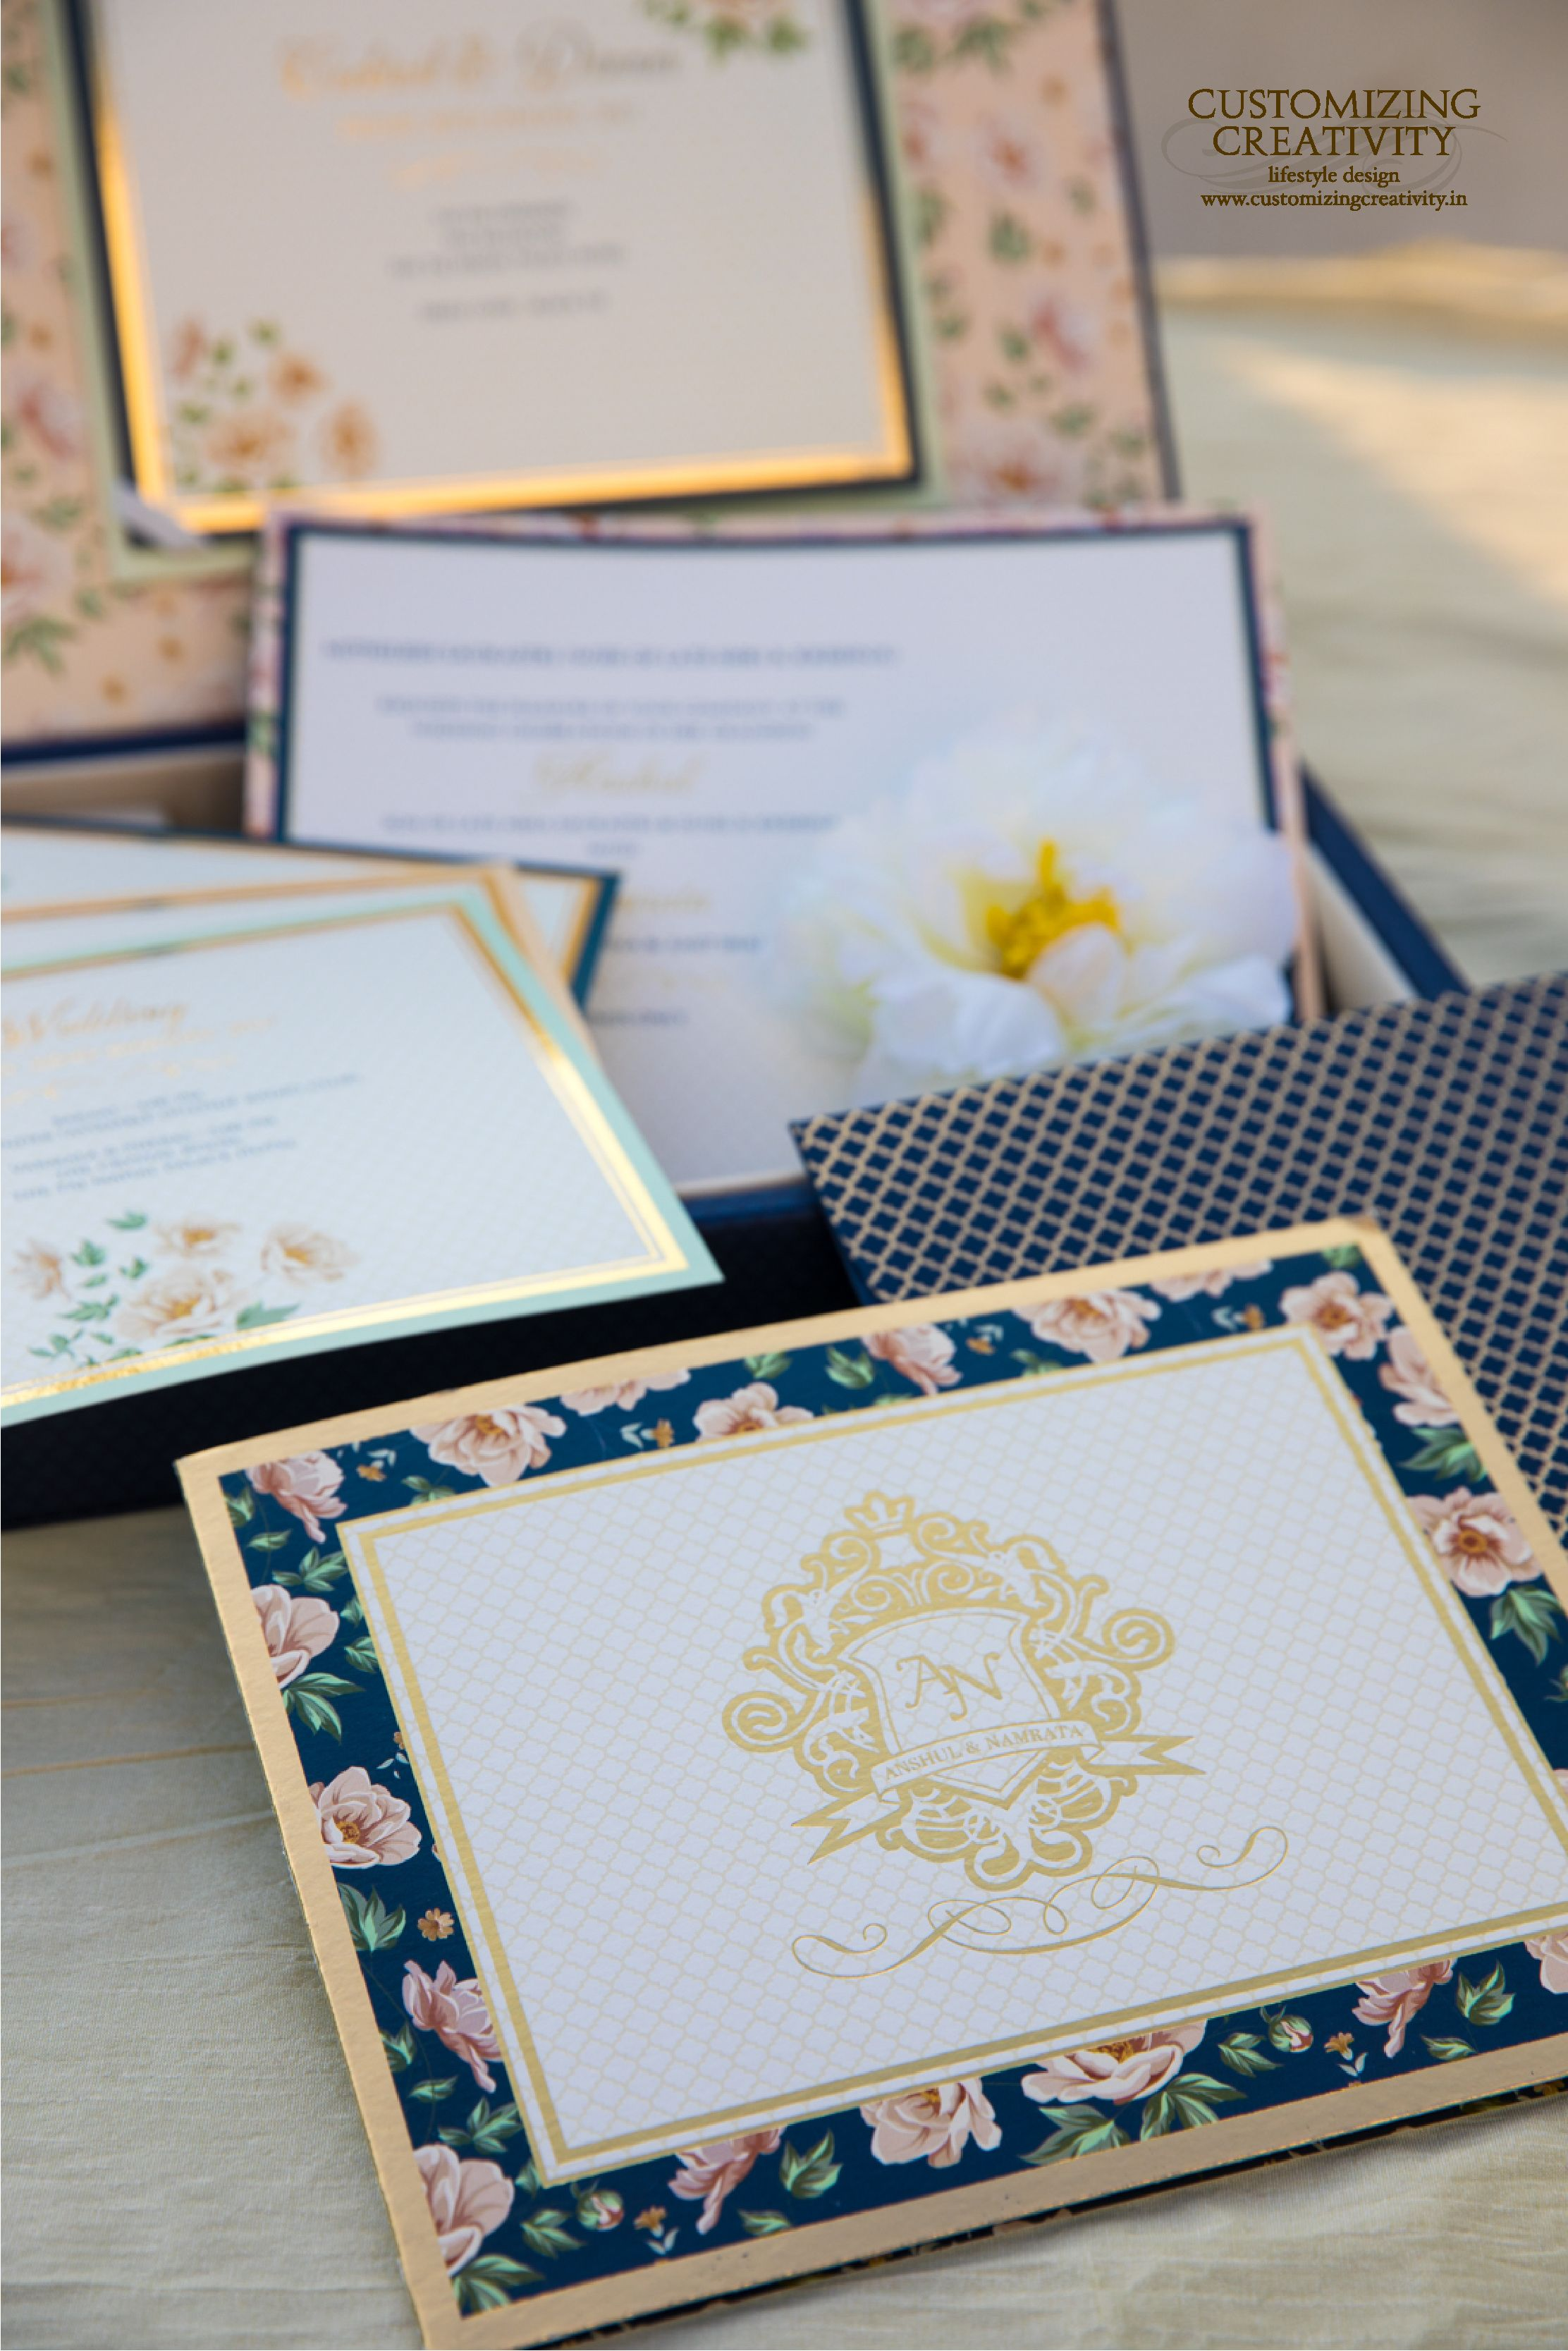 Wedding Invitation Cards Indian Invites Stationery Customized Invitations Custom Gold Foiling